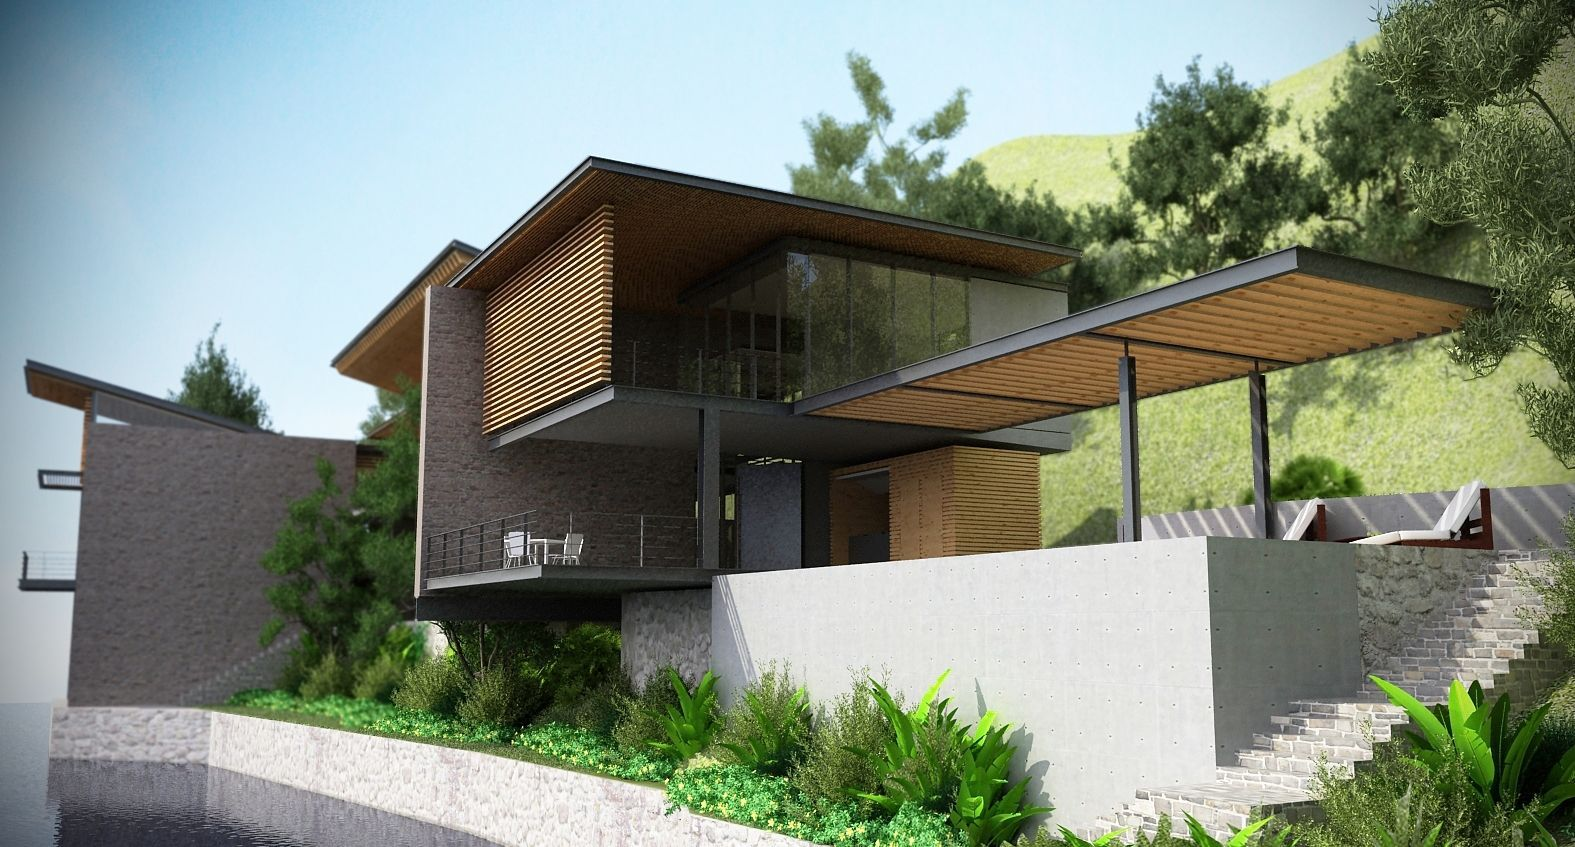 Pre presa lake house avp architecture interior design for Home architecture design online